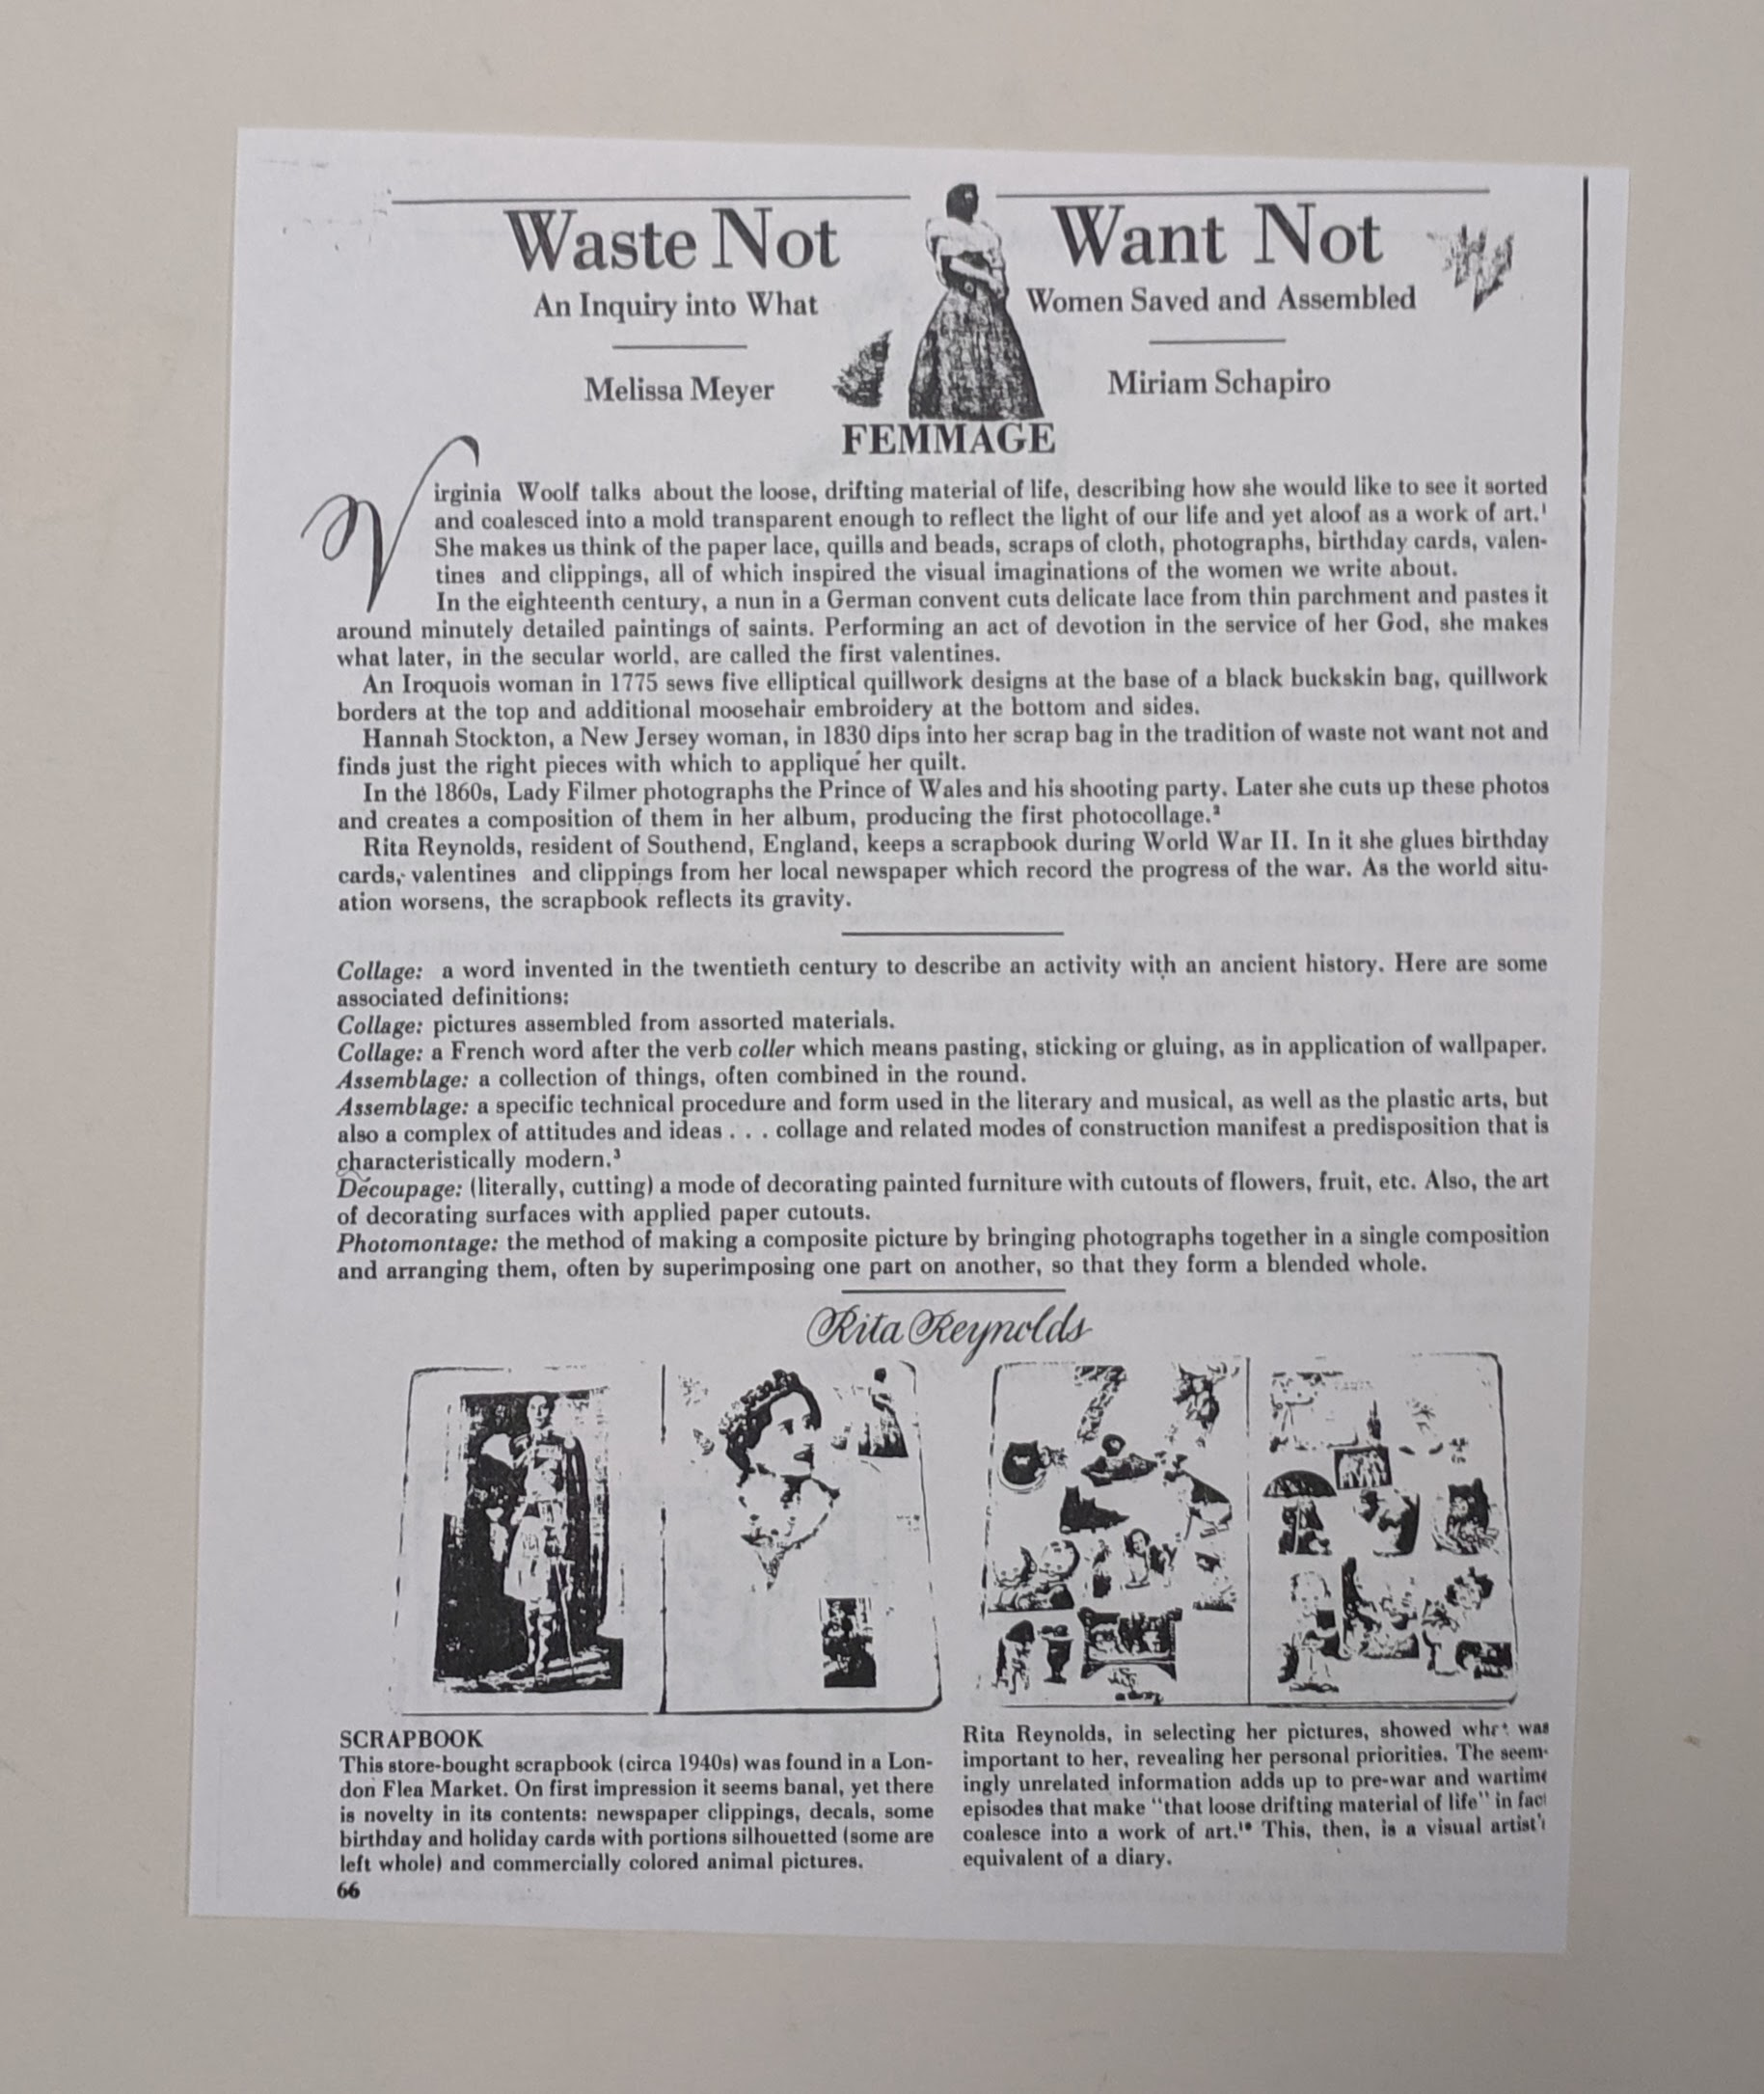 """Waste Not Want Not"", with Melissa Meyer."